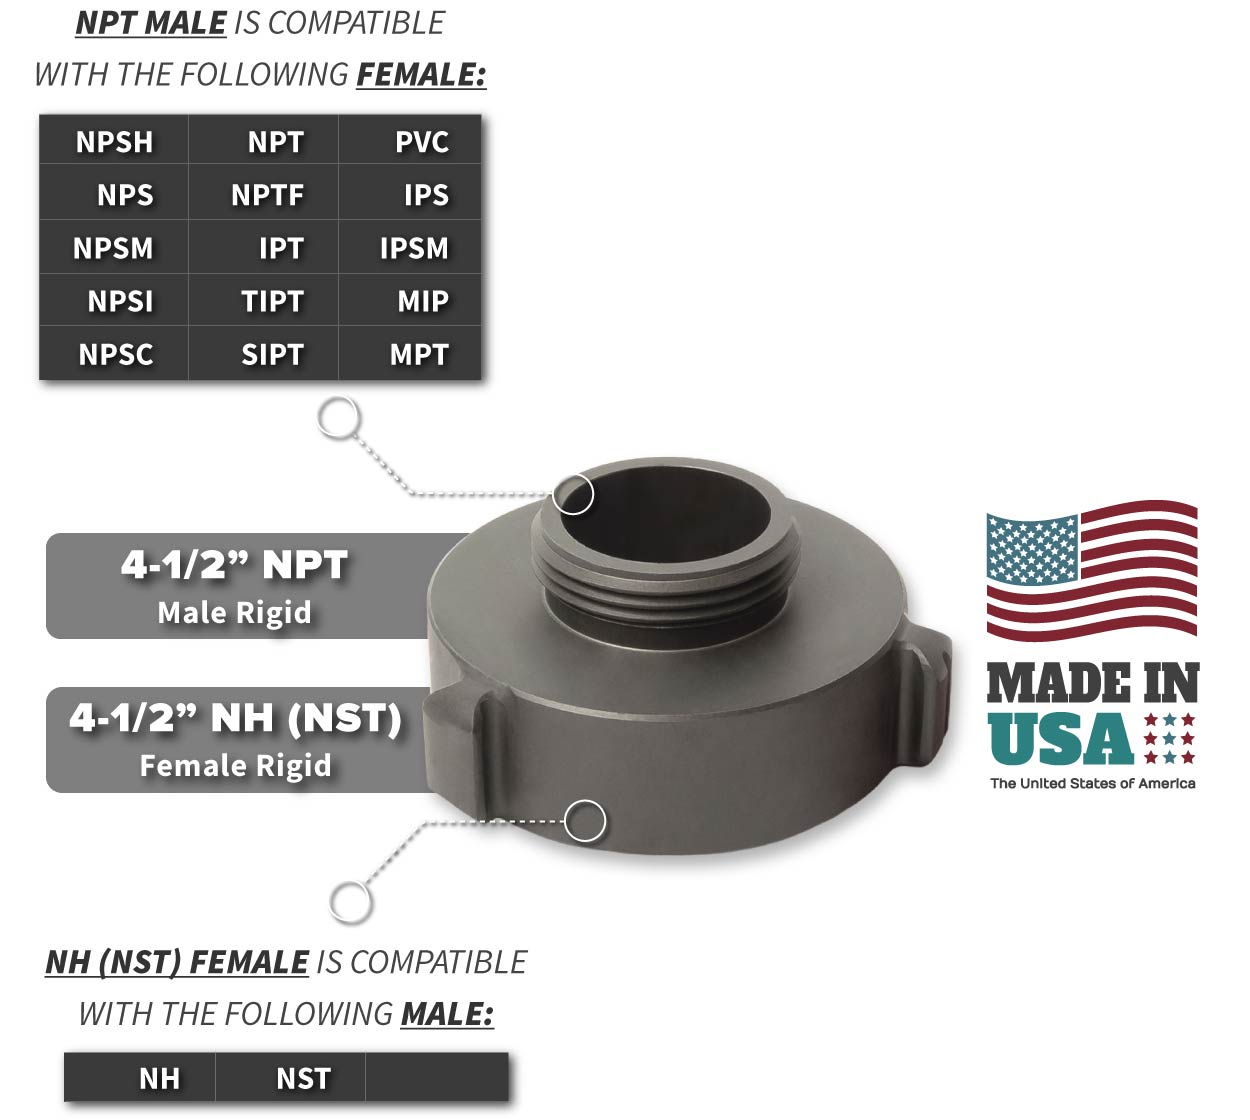 4.5 Inch NH-NST Female x 4.5 Inch NPT Male Compatibility Thread Chart